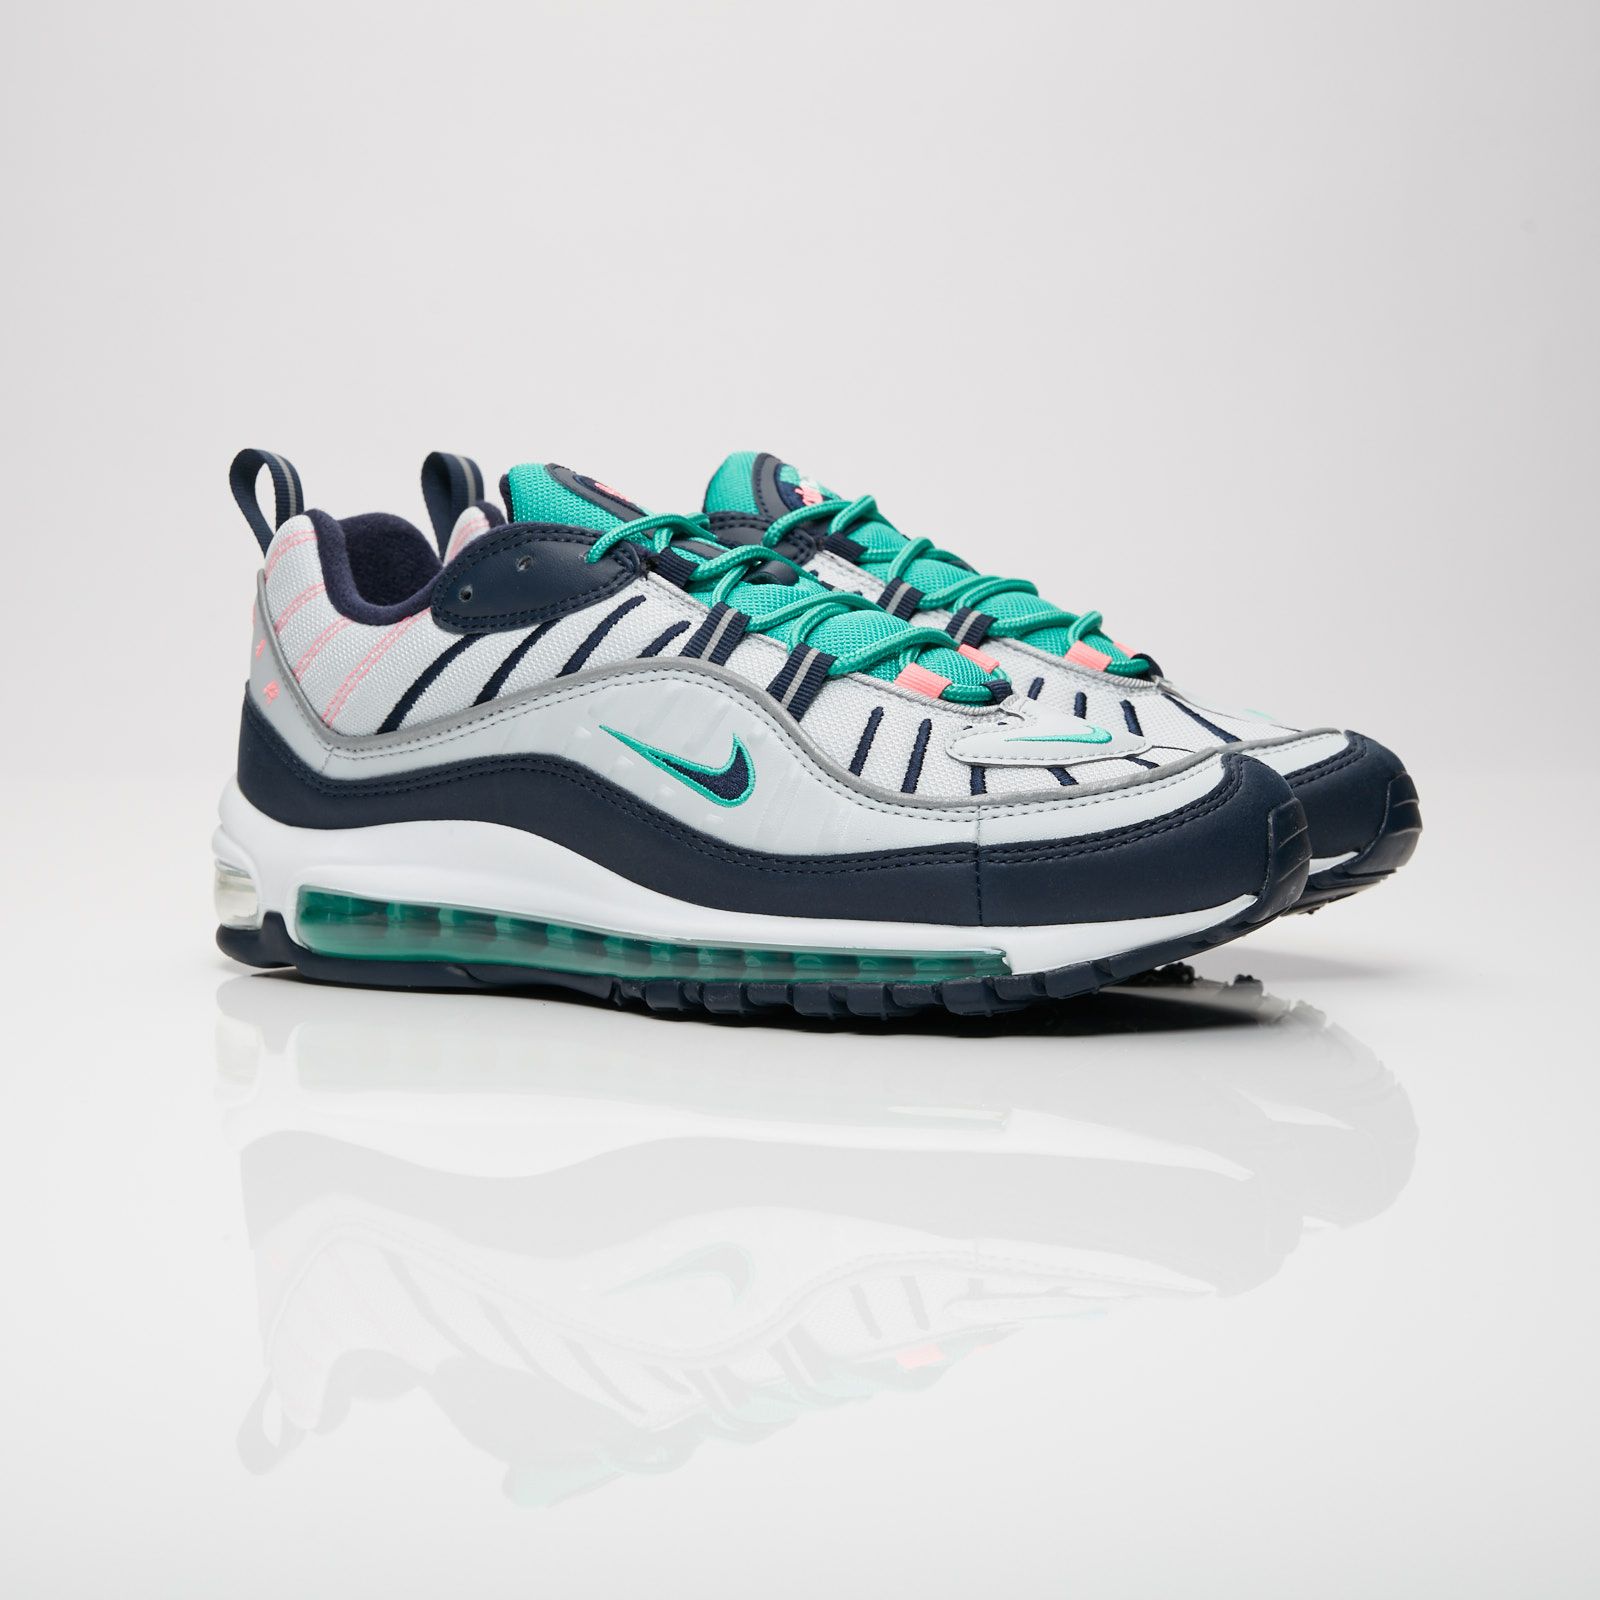 49c081ee816df6 Nike Air Max 98 - 640744-005 - Sneakersnstuff